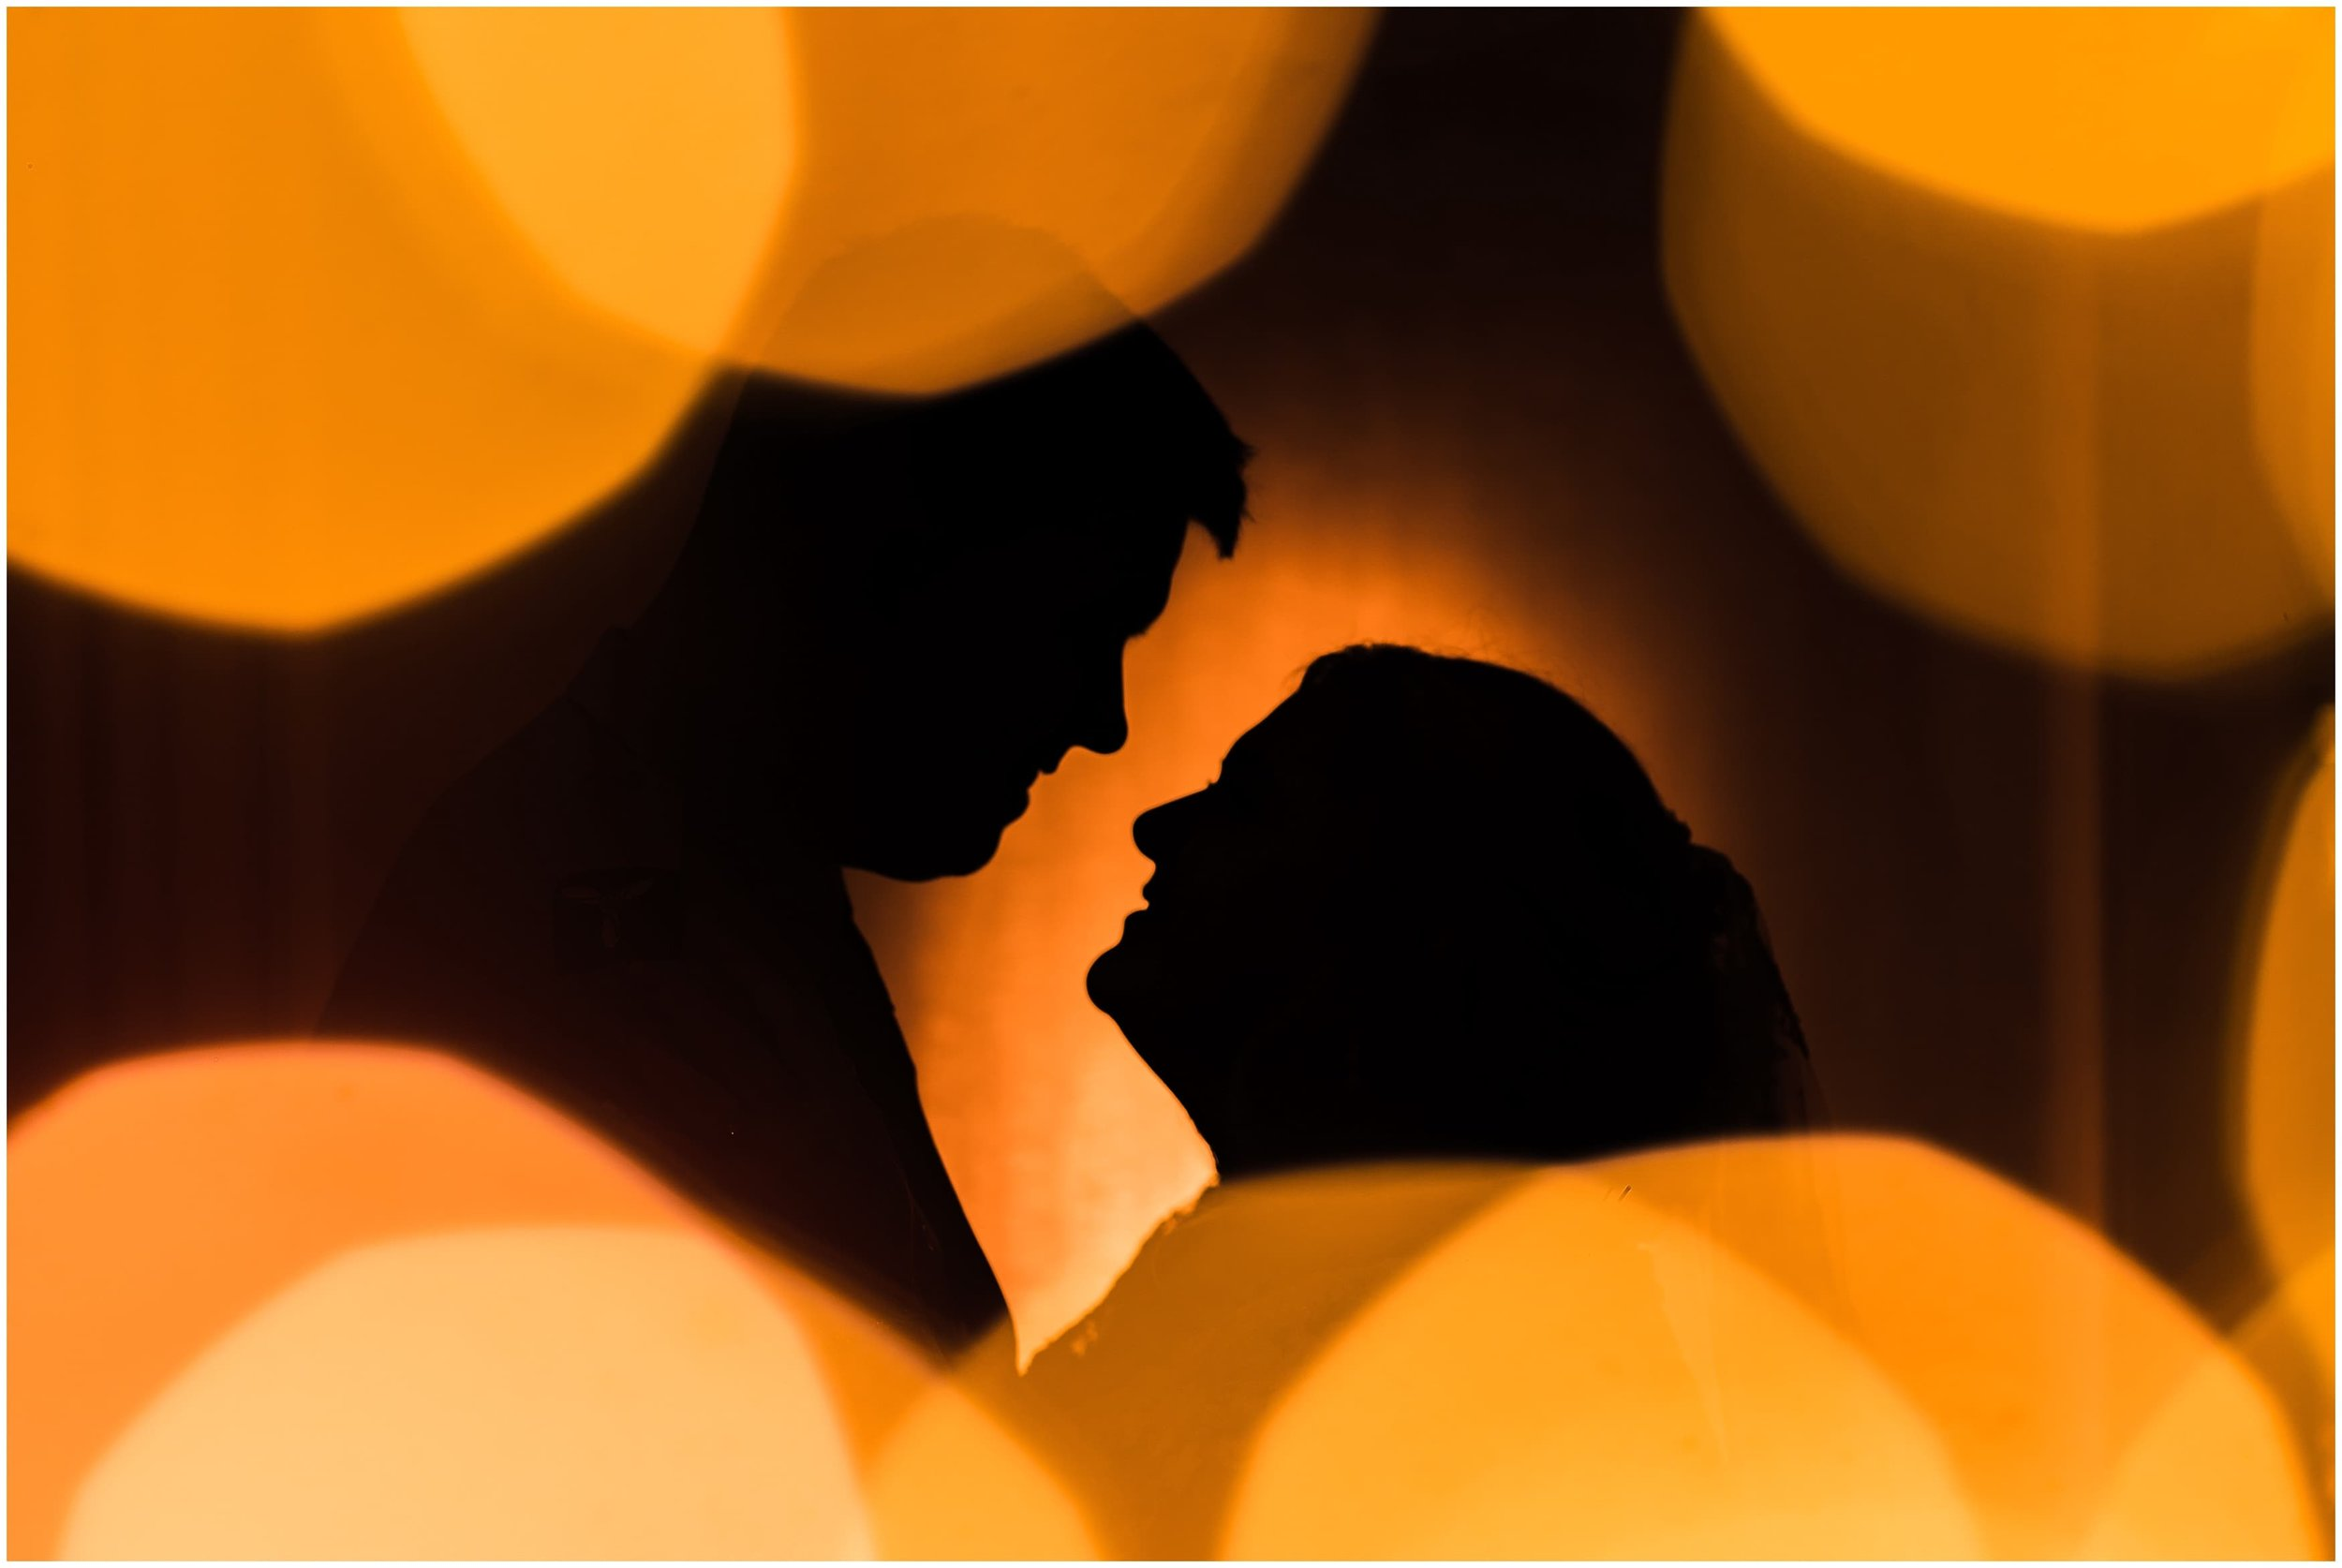 Twilight shoot creative portrait of Bride and Groom